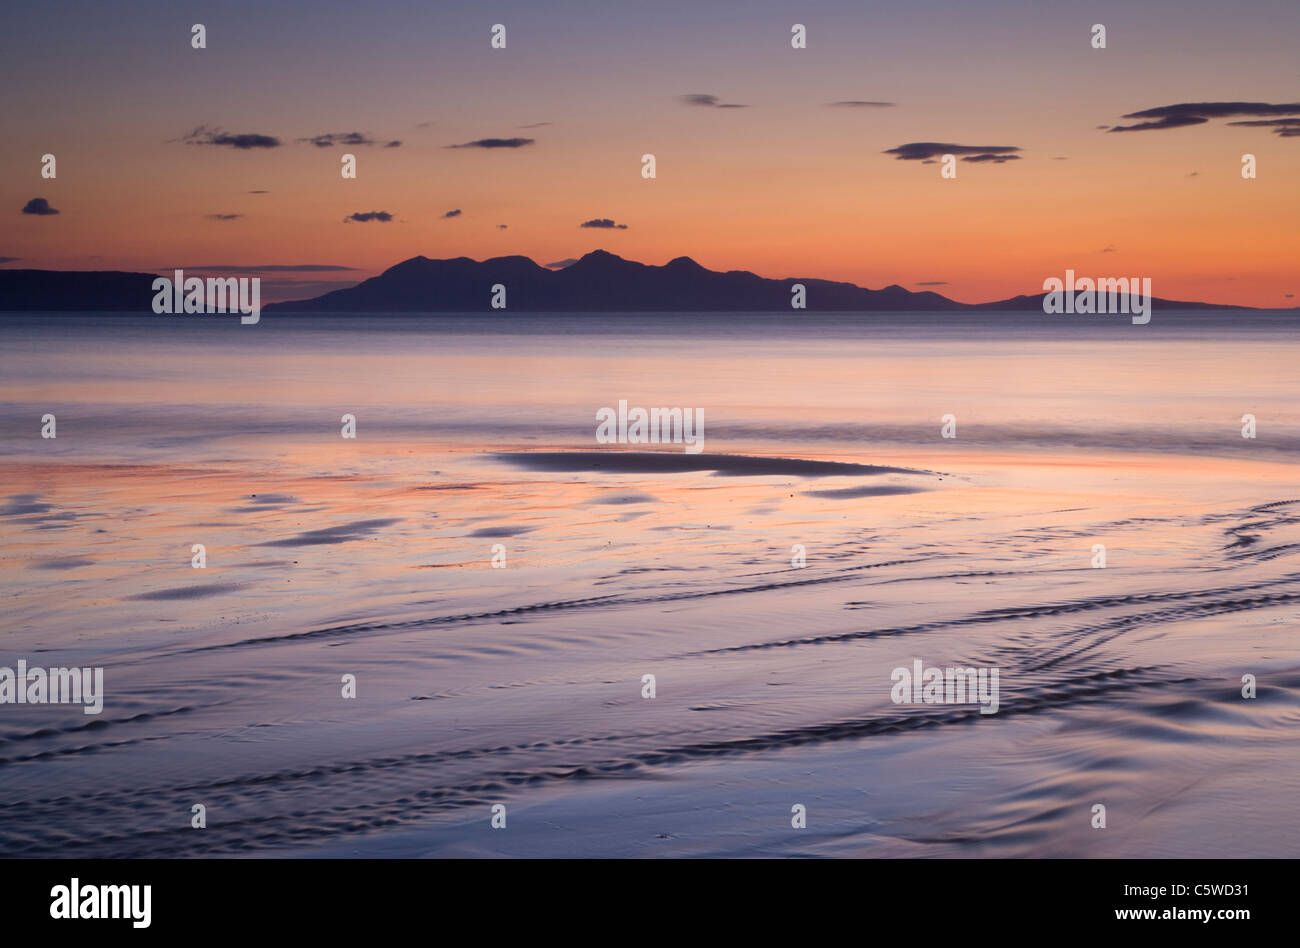 Arisaig Bay at sunset with view to Isle of Rum, North-west Scotland, Great Britain. - Stock Image